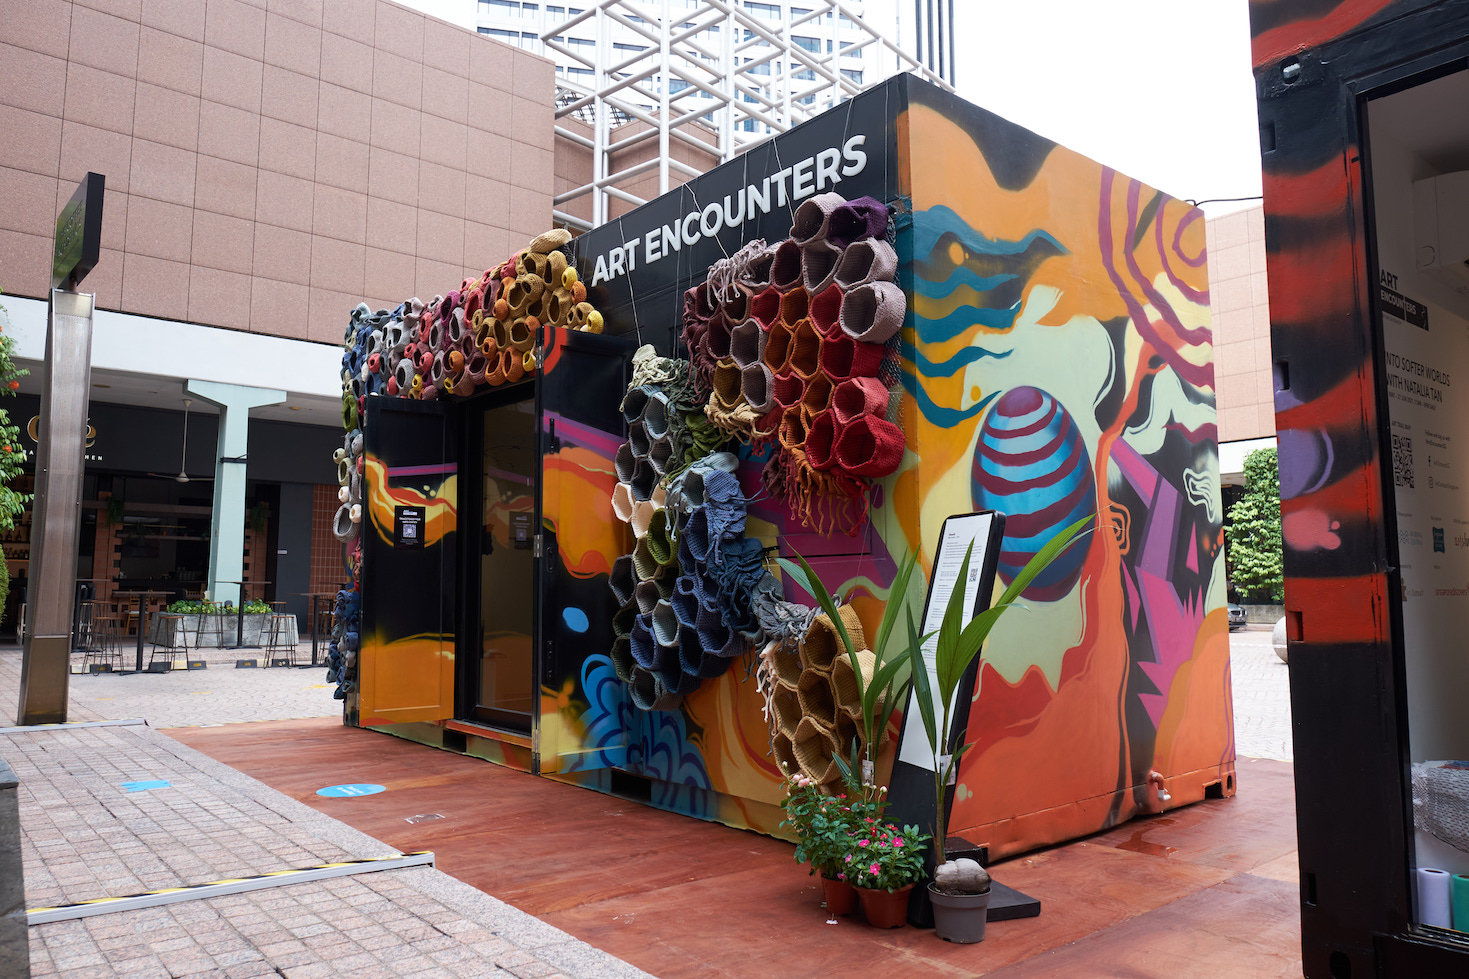 Into Softer Worlds is located at Millenia Walk. (Photo credit: Colin Wan, courtesy of Art Outreach)